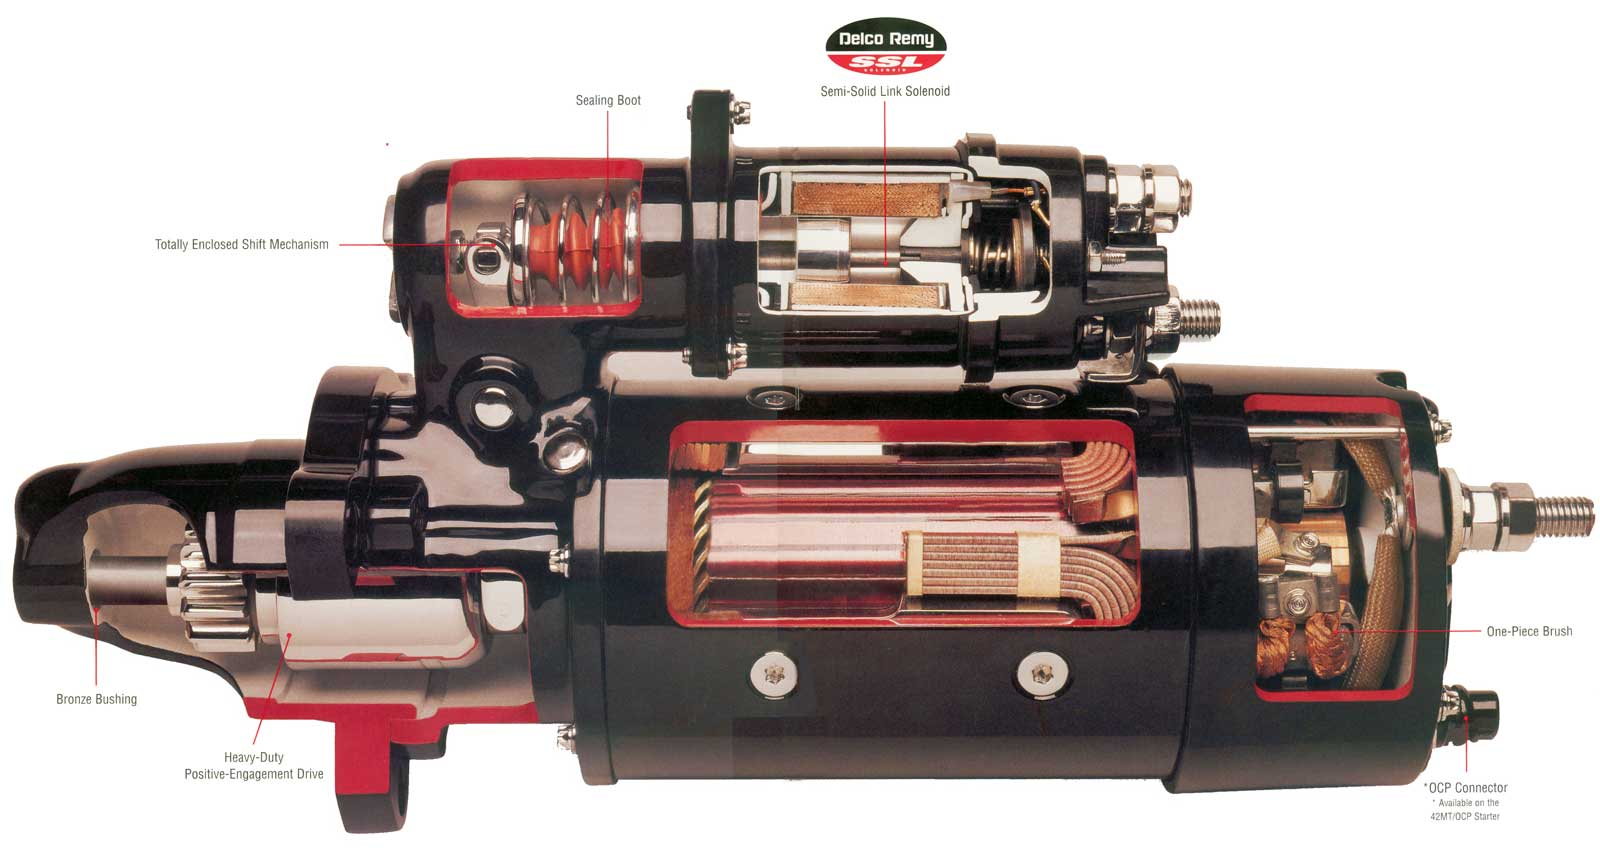 42MtDesignFeatures 42mt starter motor specifications delco remy delco starter solenoid wiring diagram at crackthecode.co